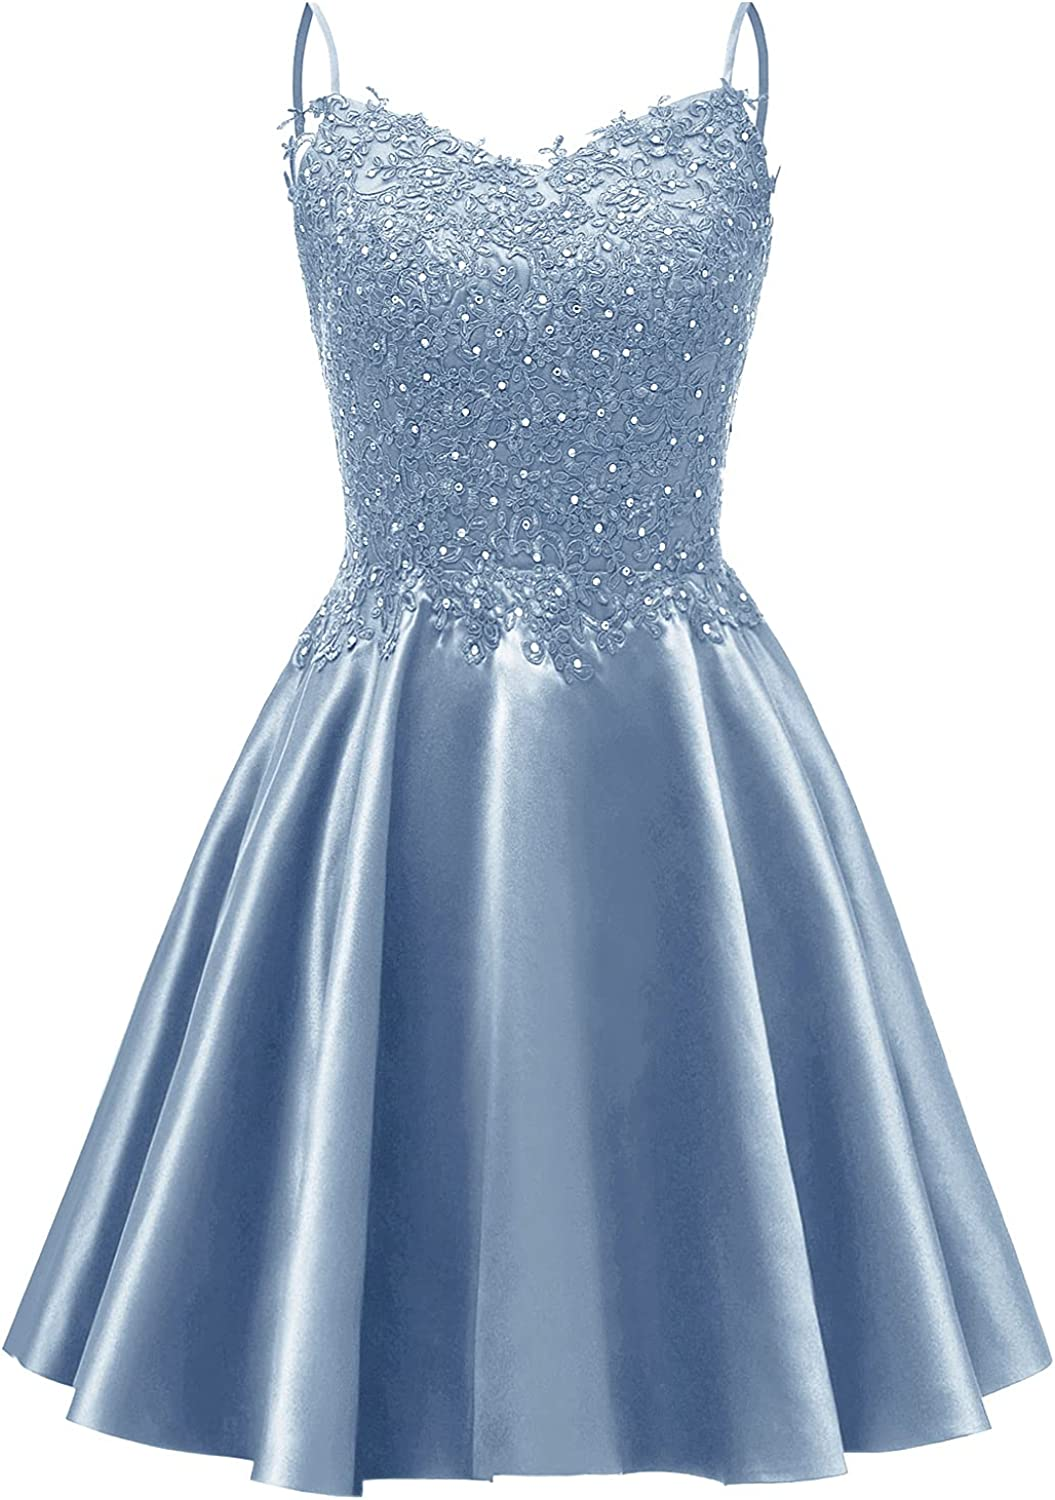 Molisa Beaded Short Prom Dress V with Neck Dresses New mail order supreme Po Homecoming